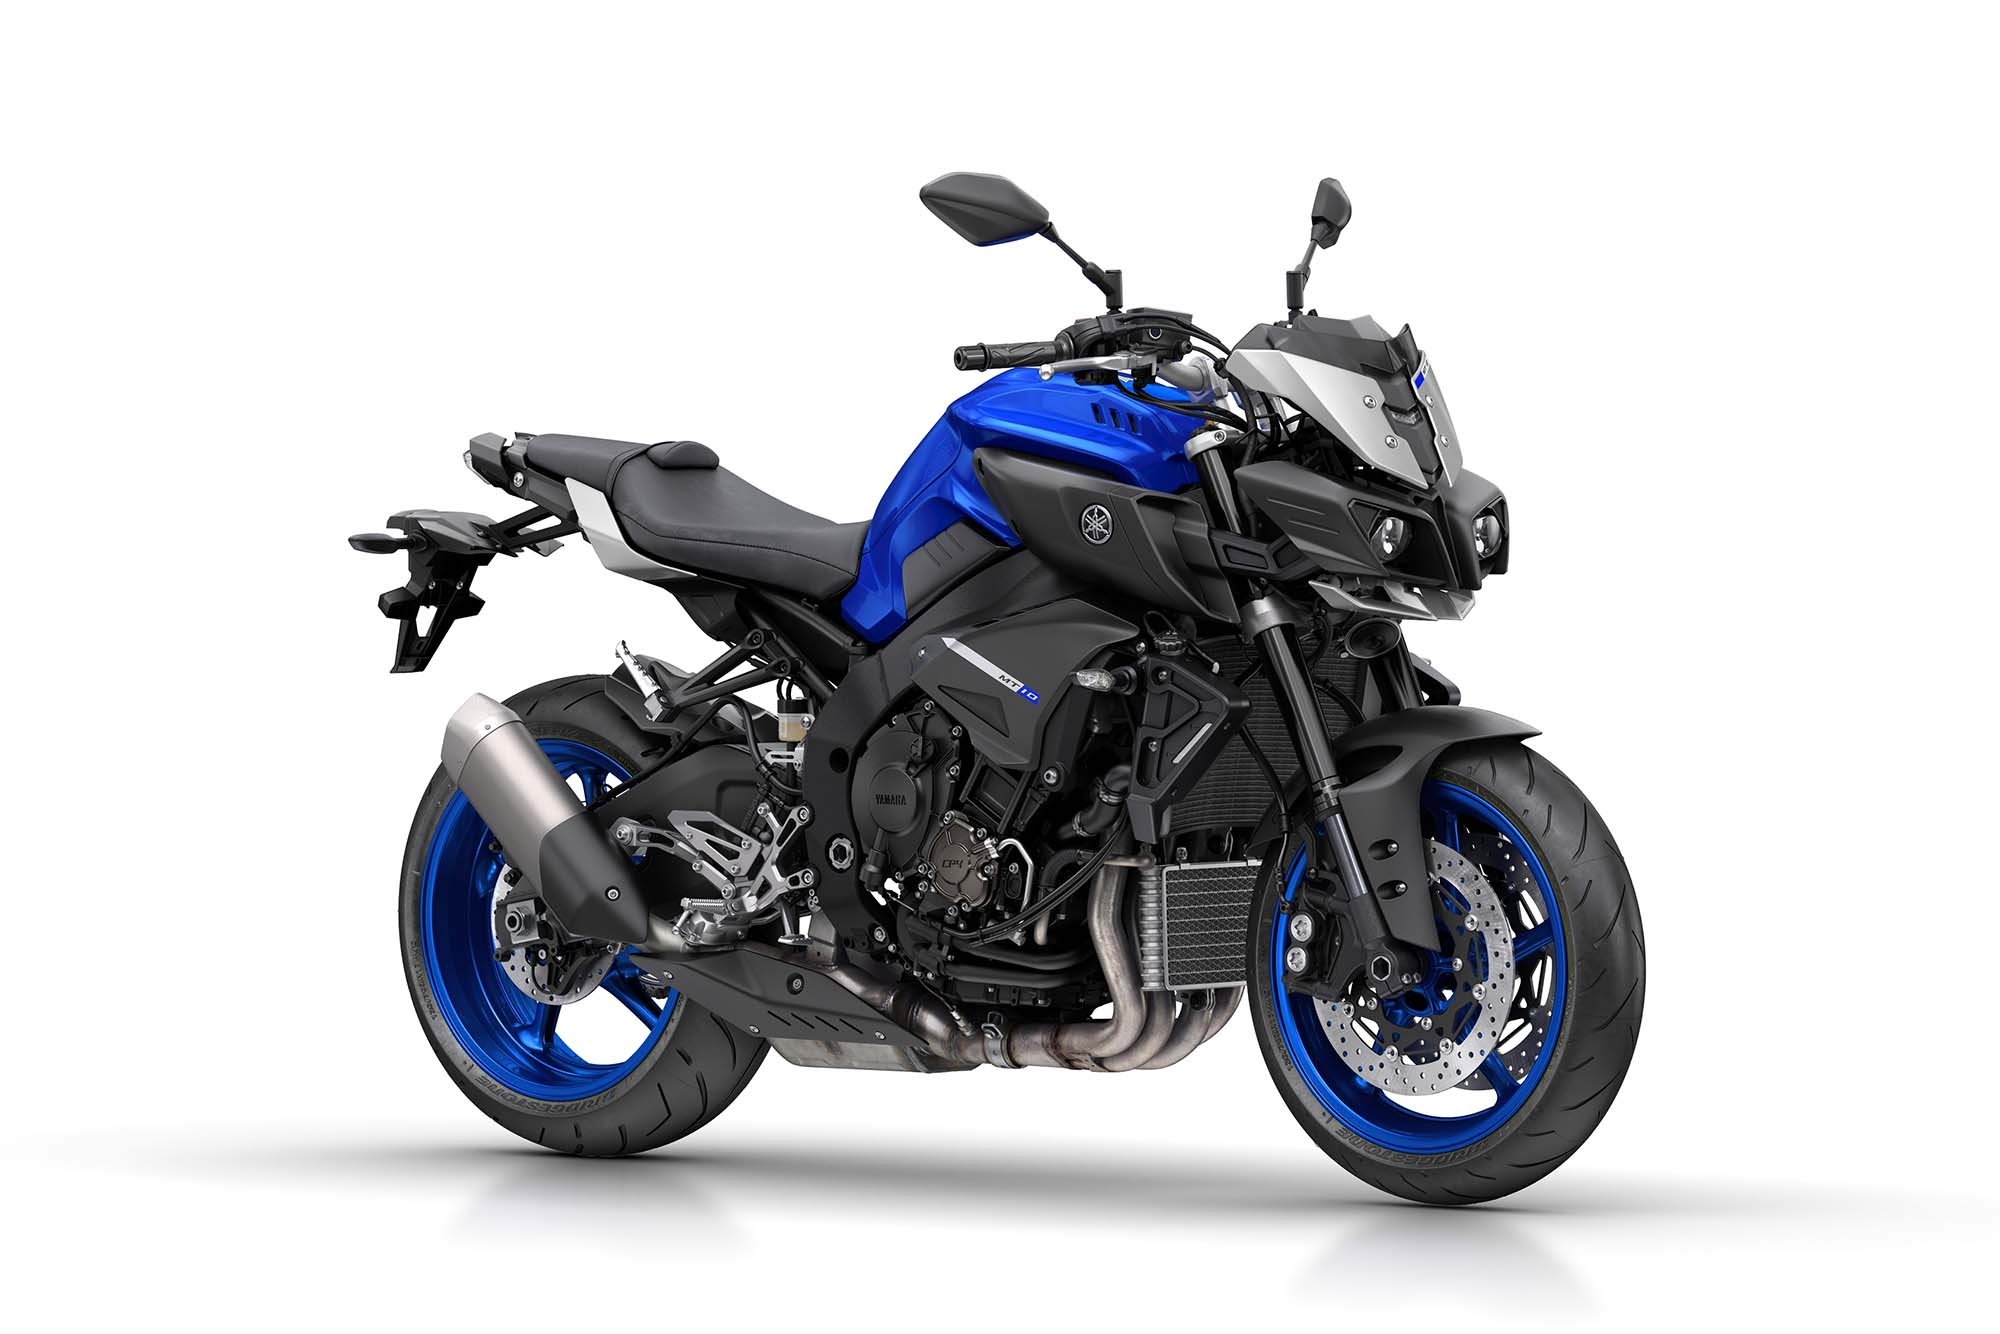 2016 Yamaha Mt 10 besides Sequential Traffic Lights additionally Diminutive Dynamite Say Hello 230 Bhp Tata Nano also Voltage Spikes When Driving Dc Motor With N Channel Mosfet furthermore Inverter. on dc motor power